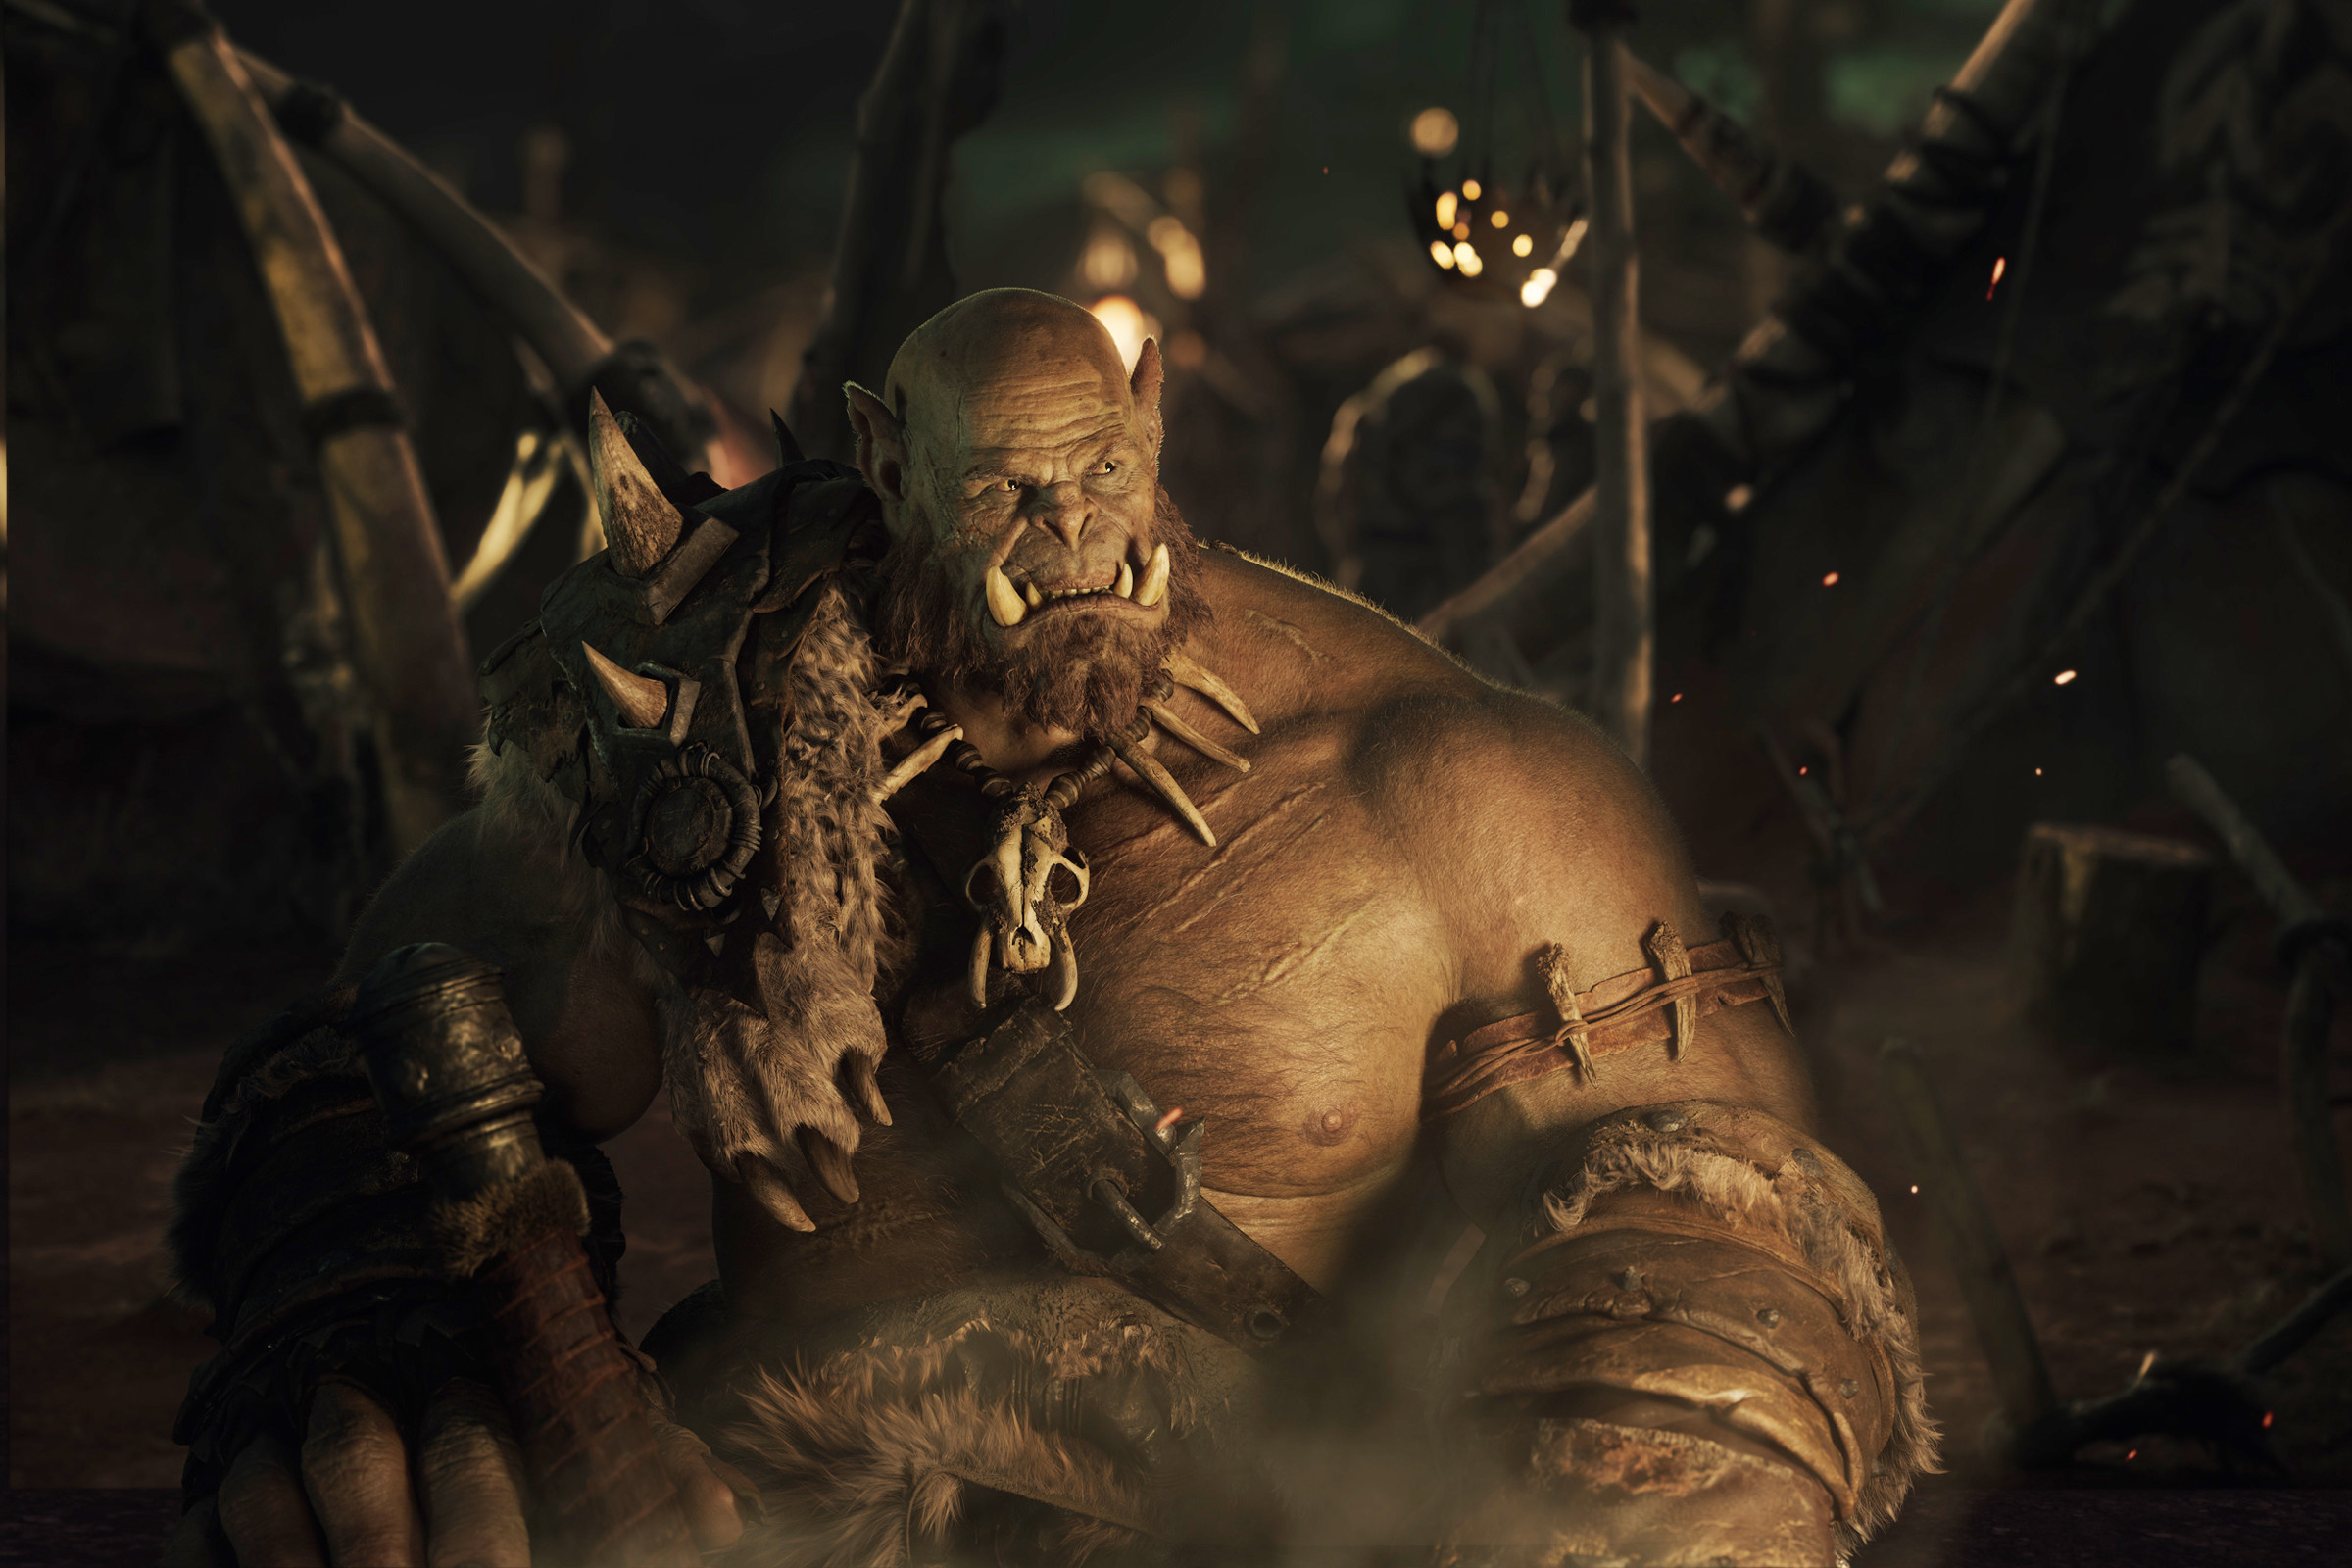 2400x1600 Warcraft Movie, Warcraft, Wow Movie, Movie, Orc, Horde. Warcraft Movie King  Llane Wrynn HD Wallpaper